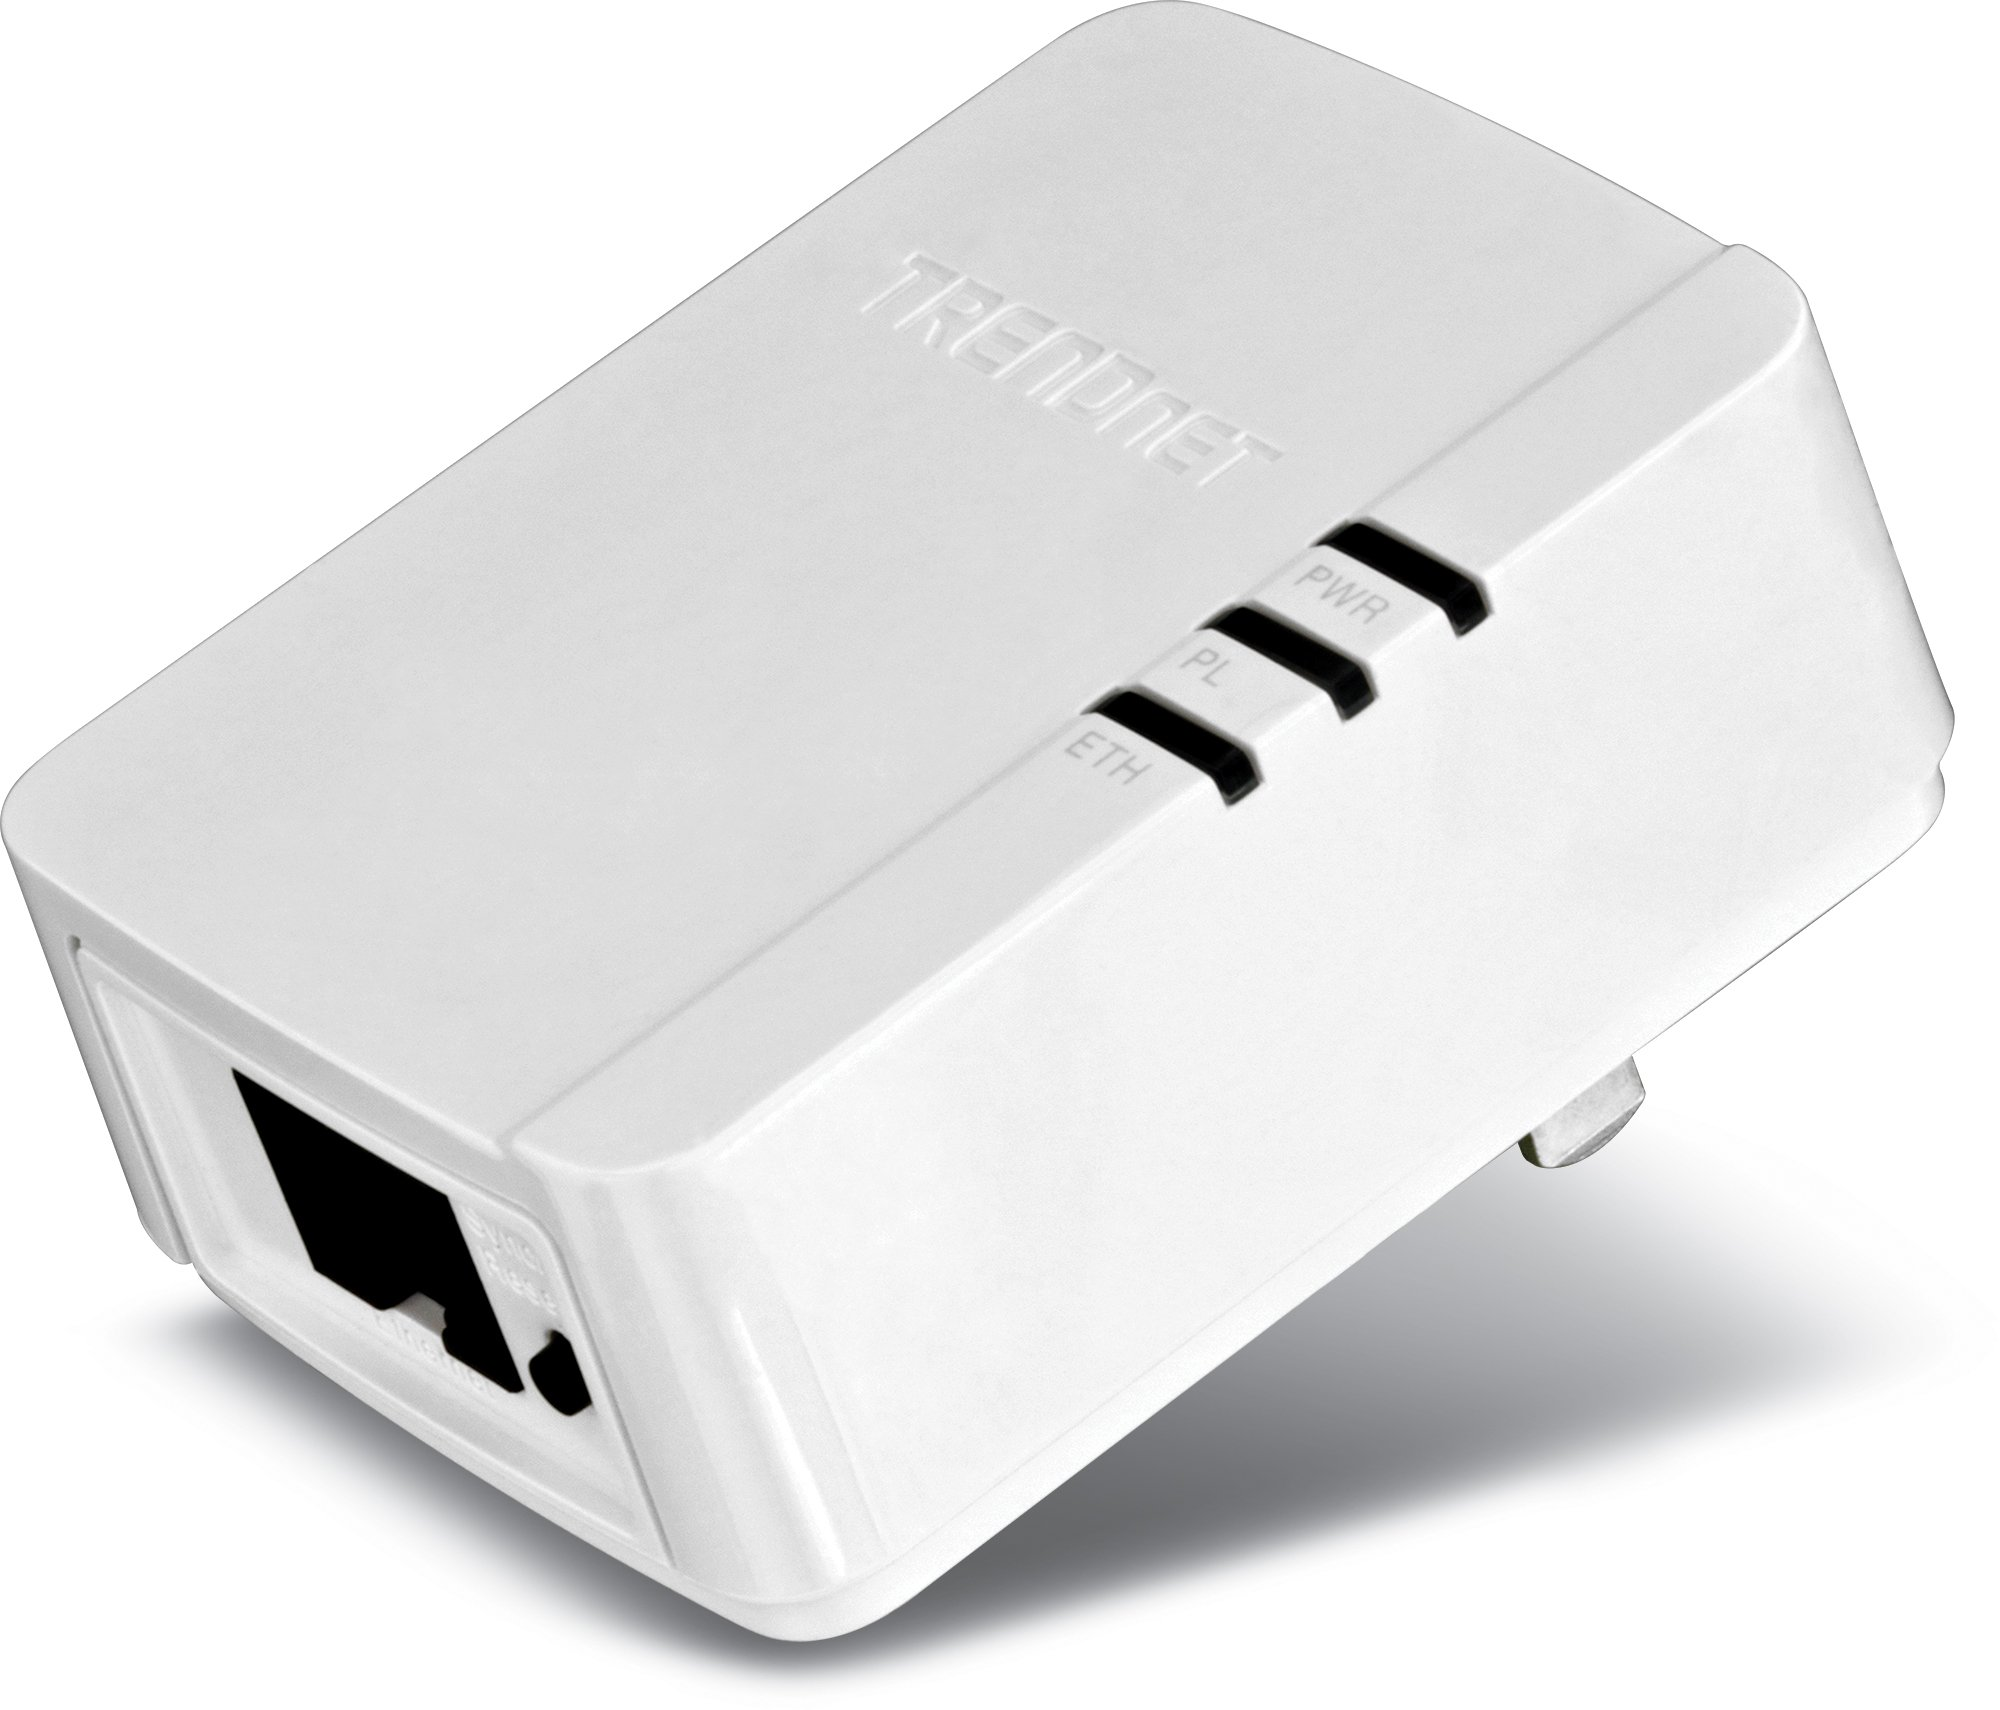 TRENDnet Powerline AV200 Mini Network Single Adapter, up to 200 Mbps over existing electrical lines, TPL-308E by TRENDnet